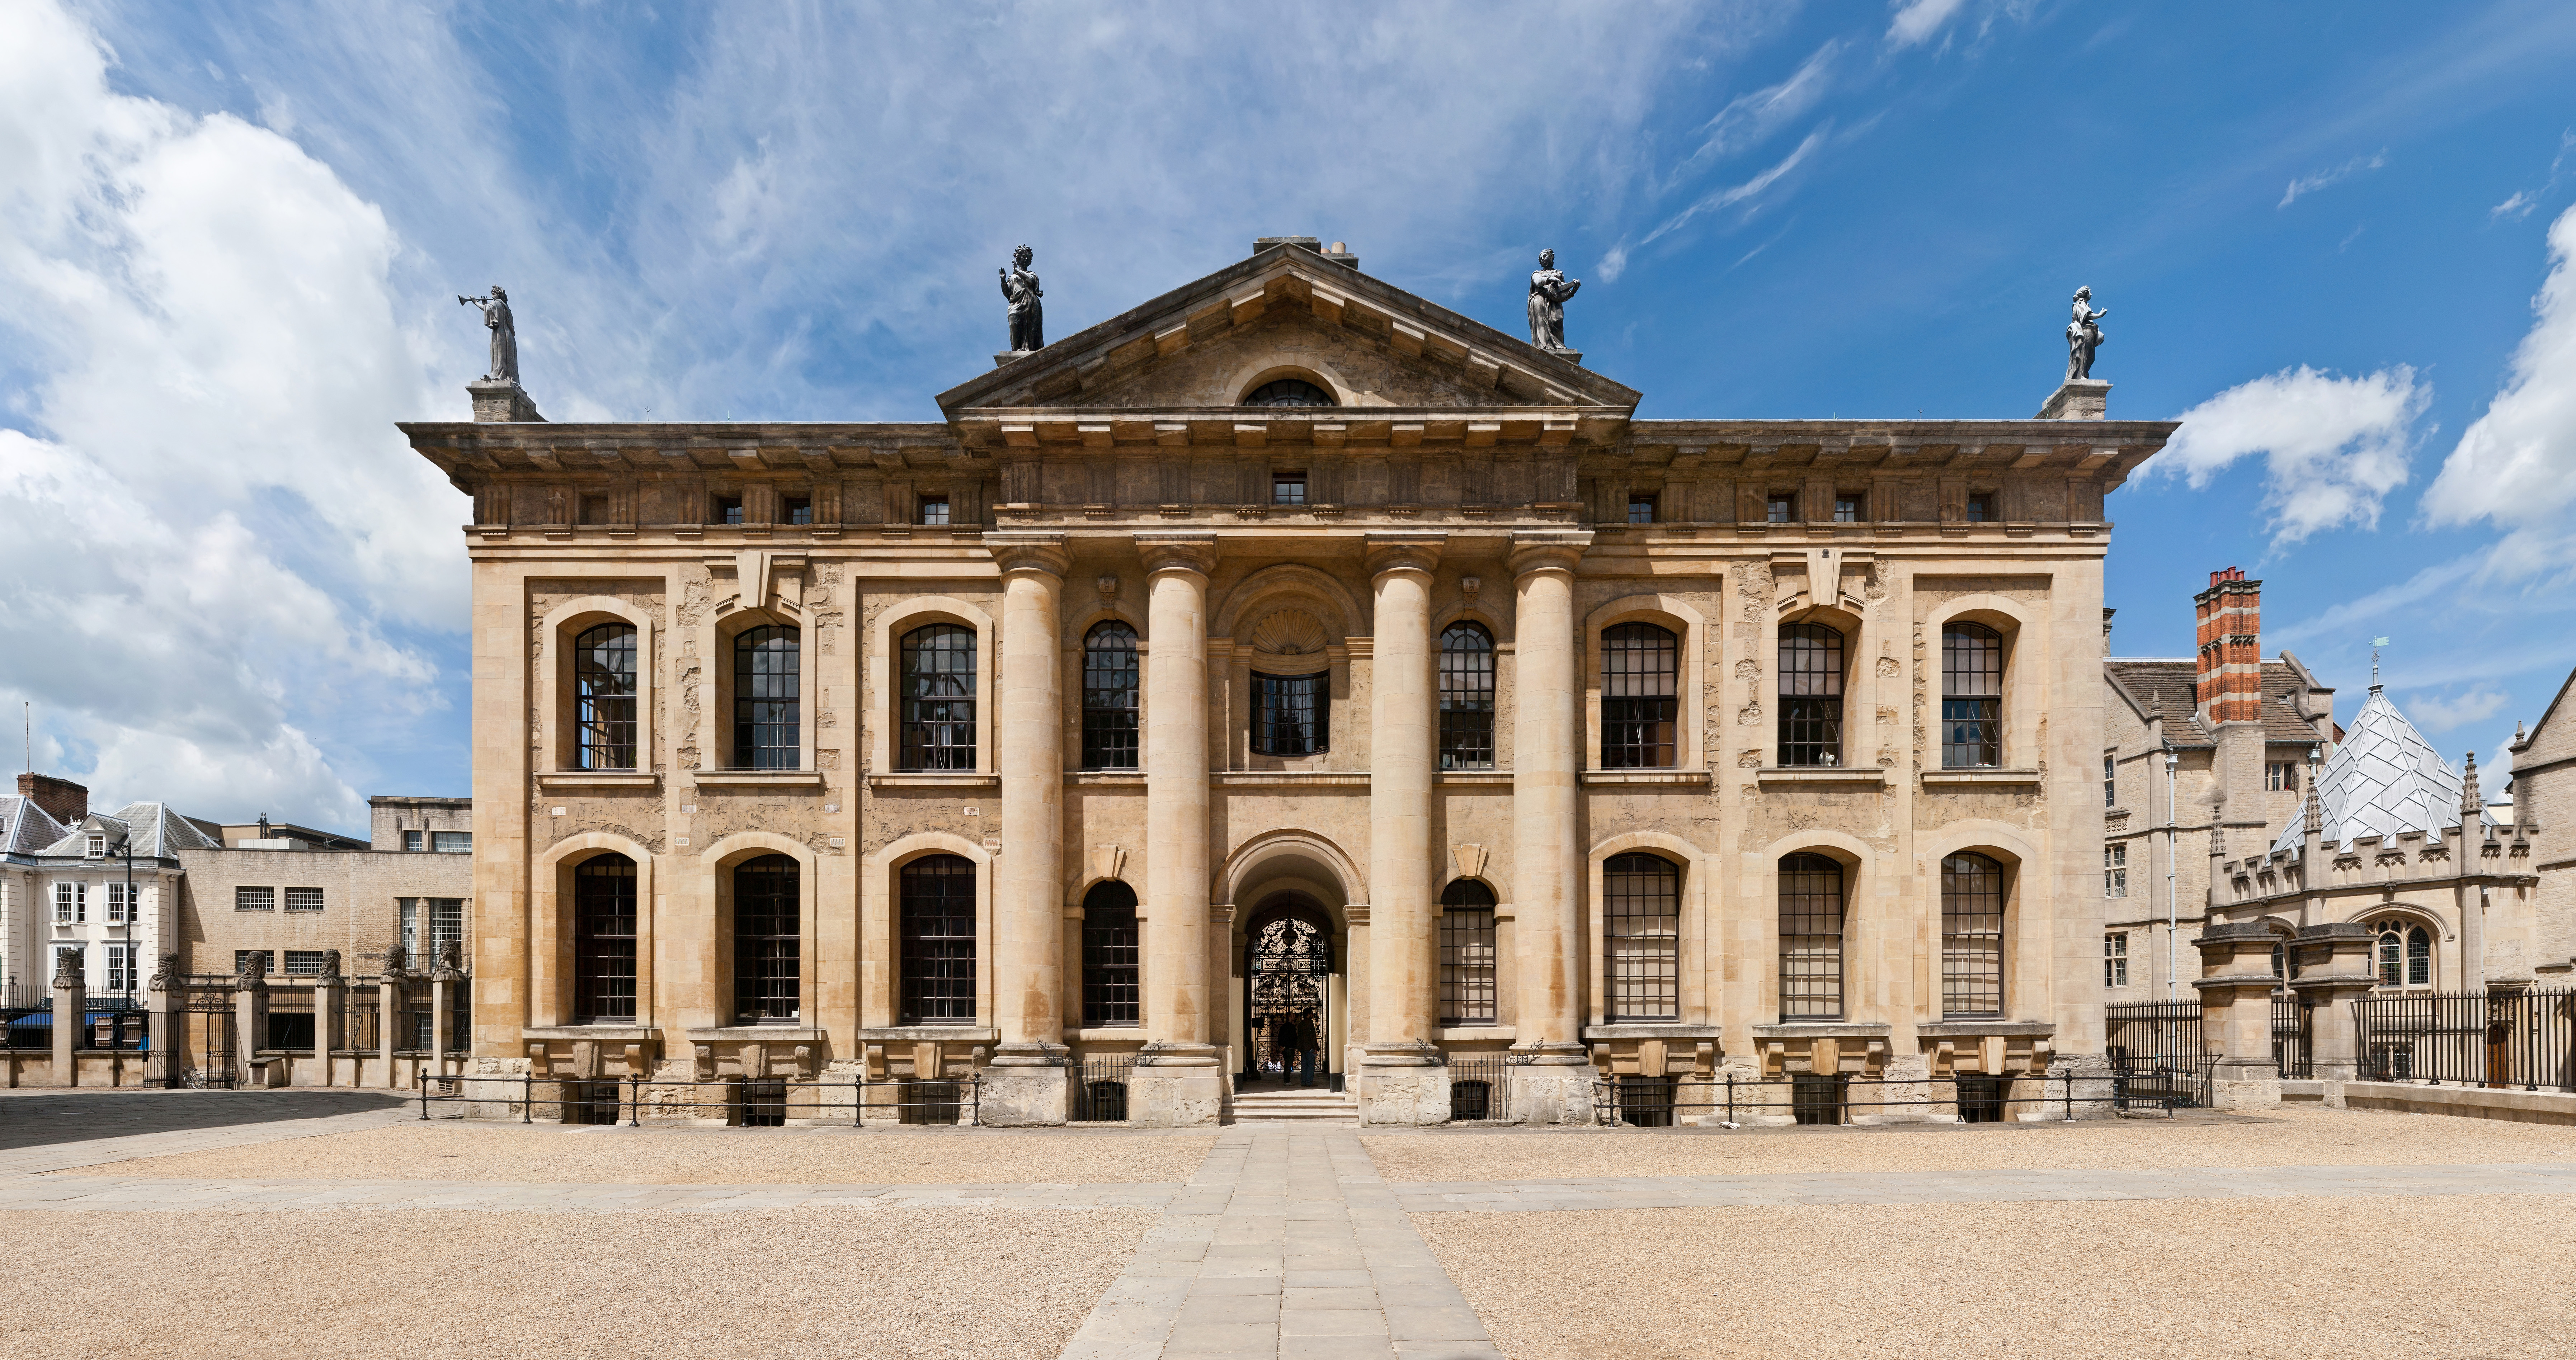 File clarendon building oxford england may - Architecture of a building ...